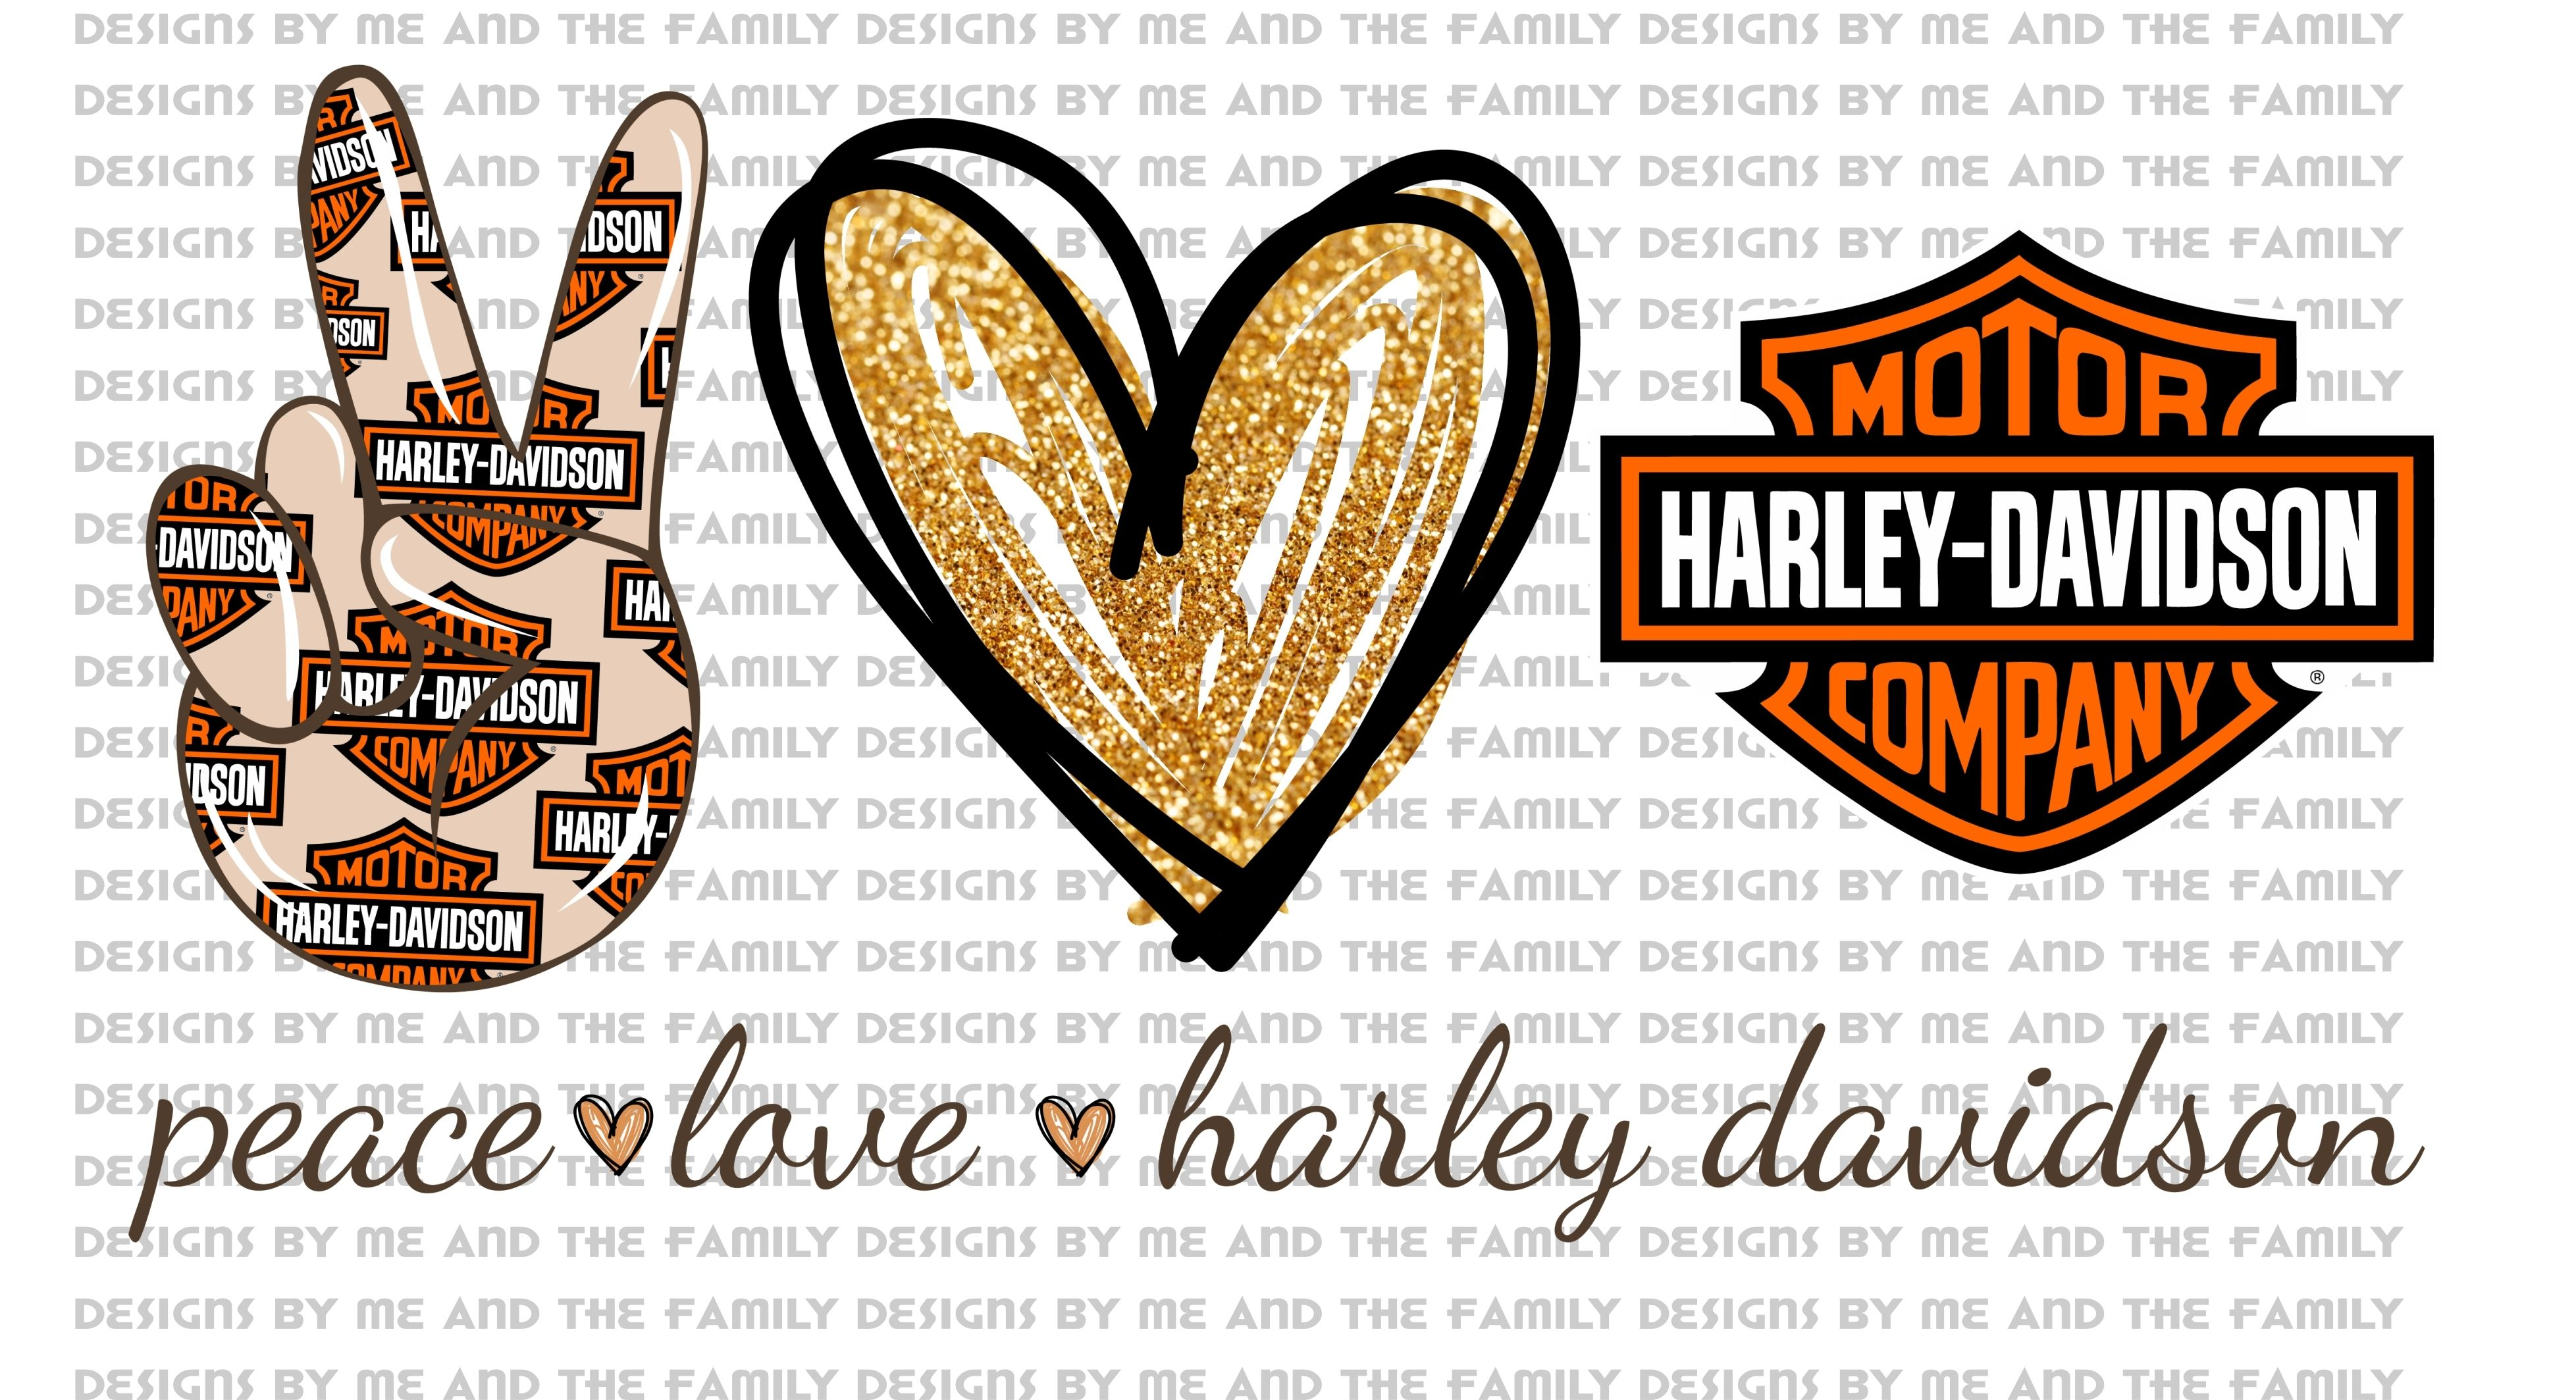 Download Peace Love Harley Davidson, All I need today is a little ...